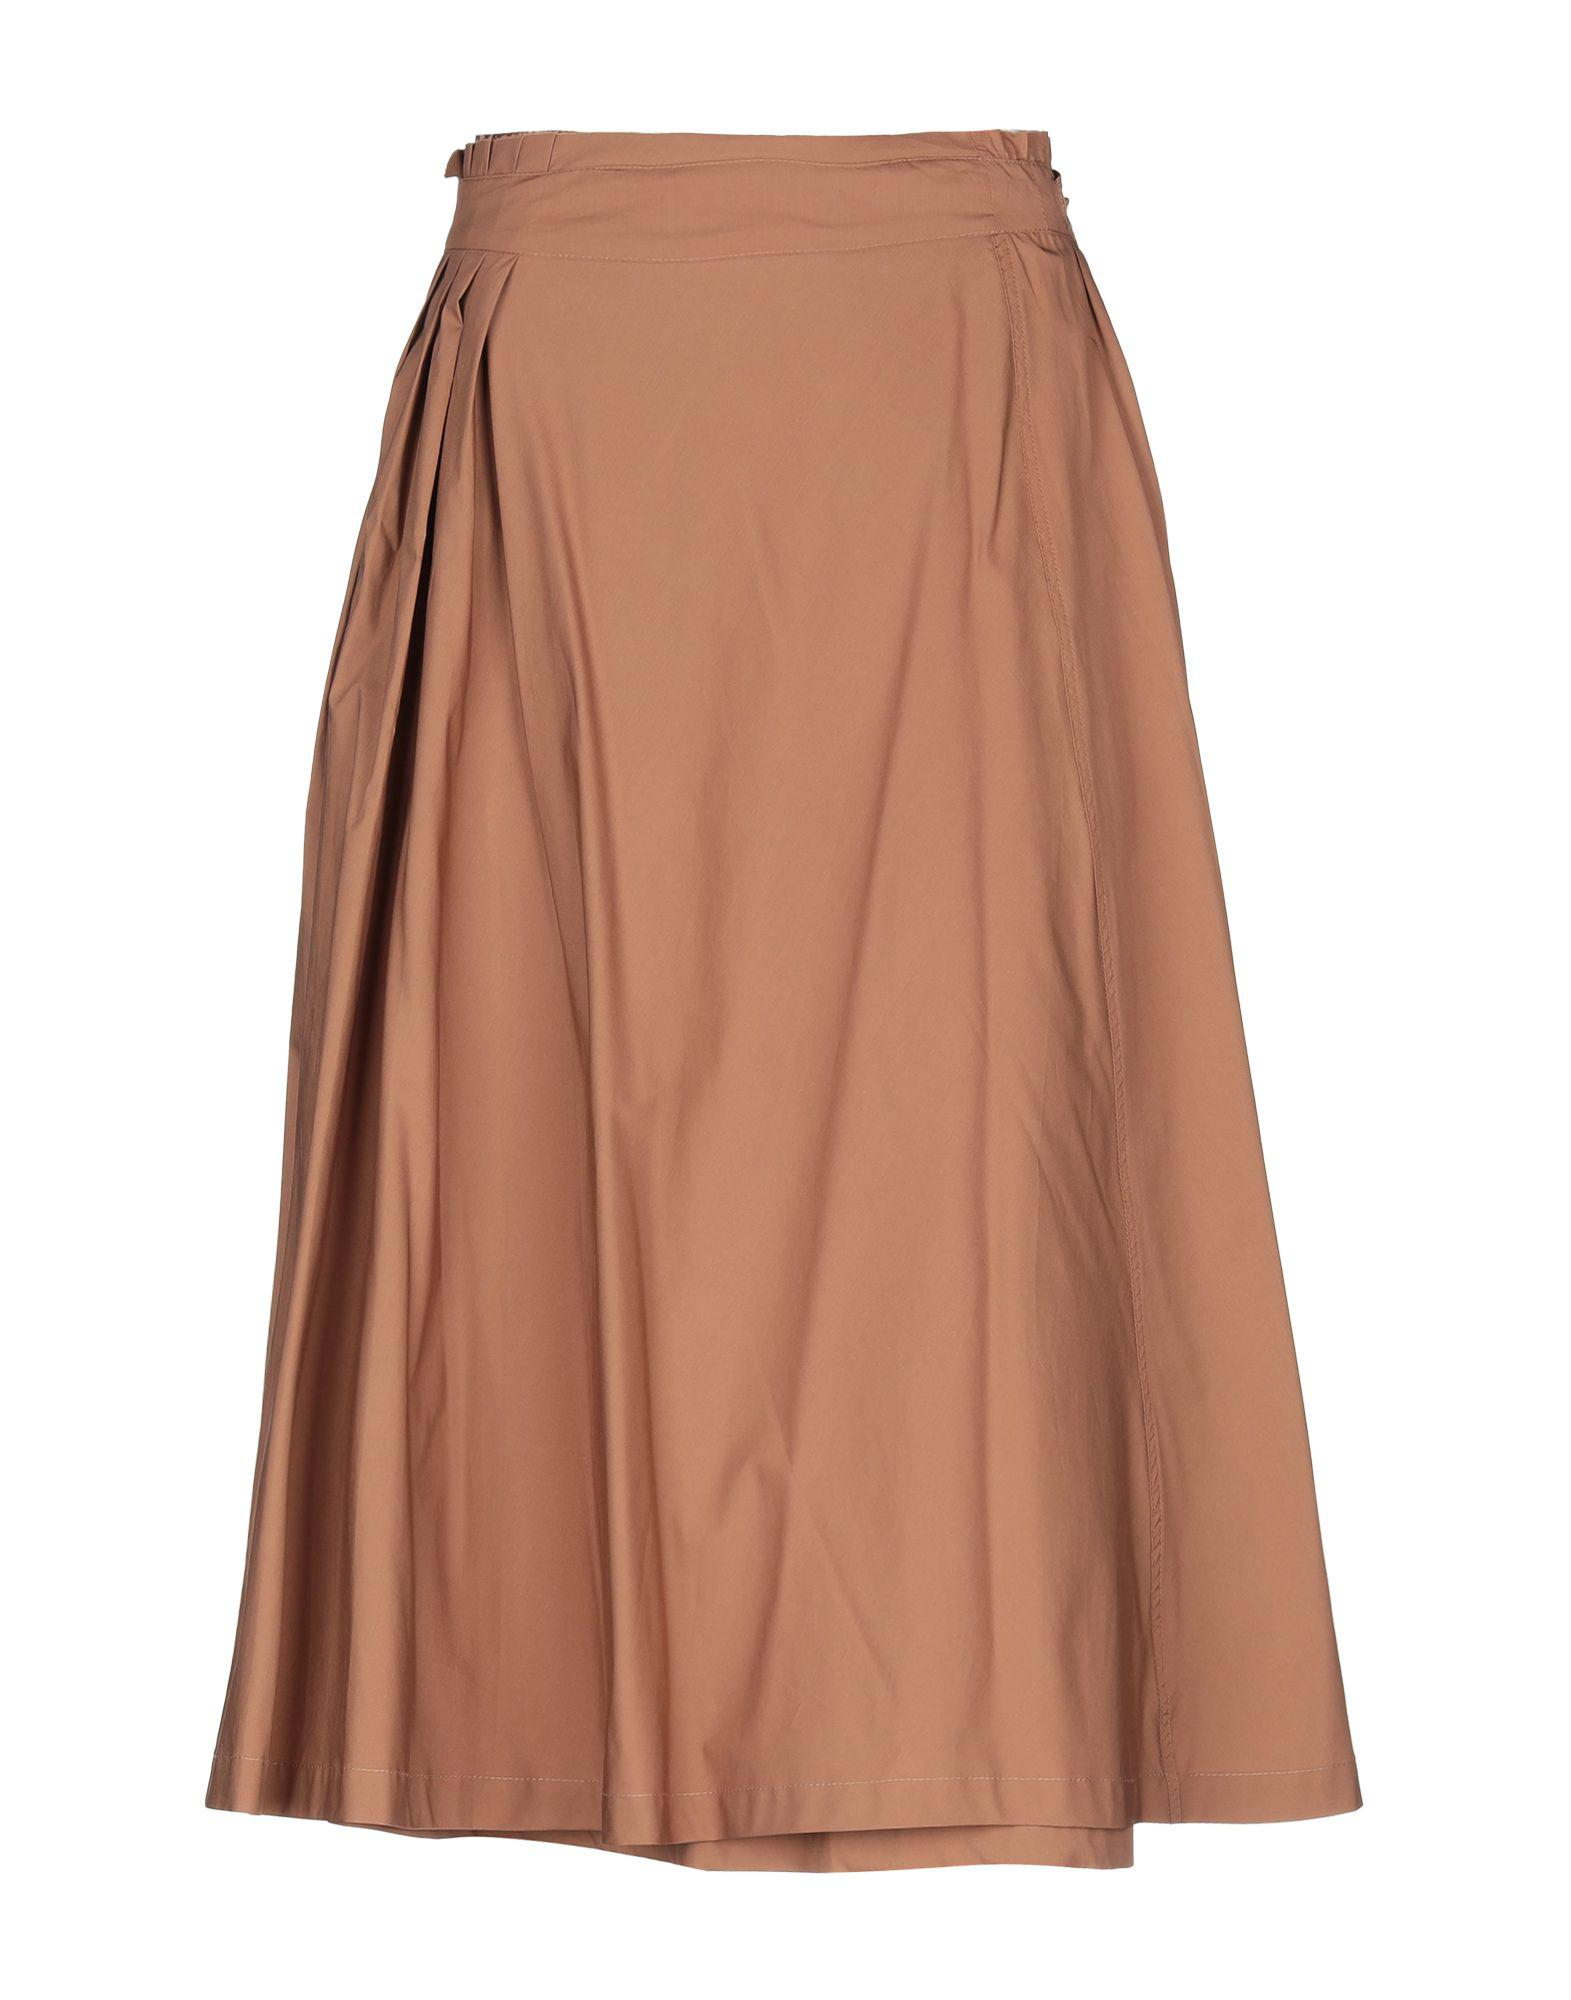 69396fd55 Roberto Collina 3/4 Length Skirt in Brown - Lyst